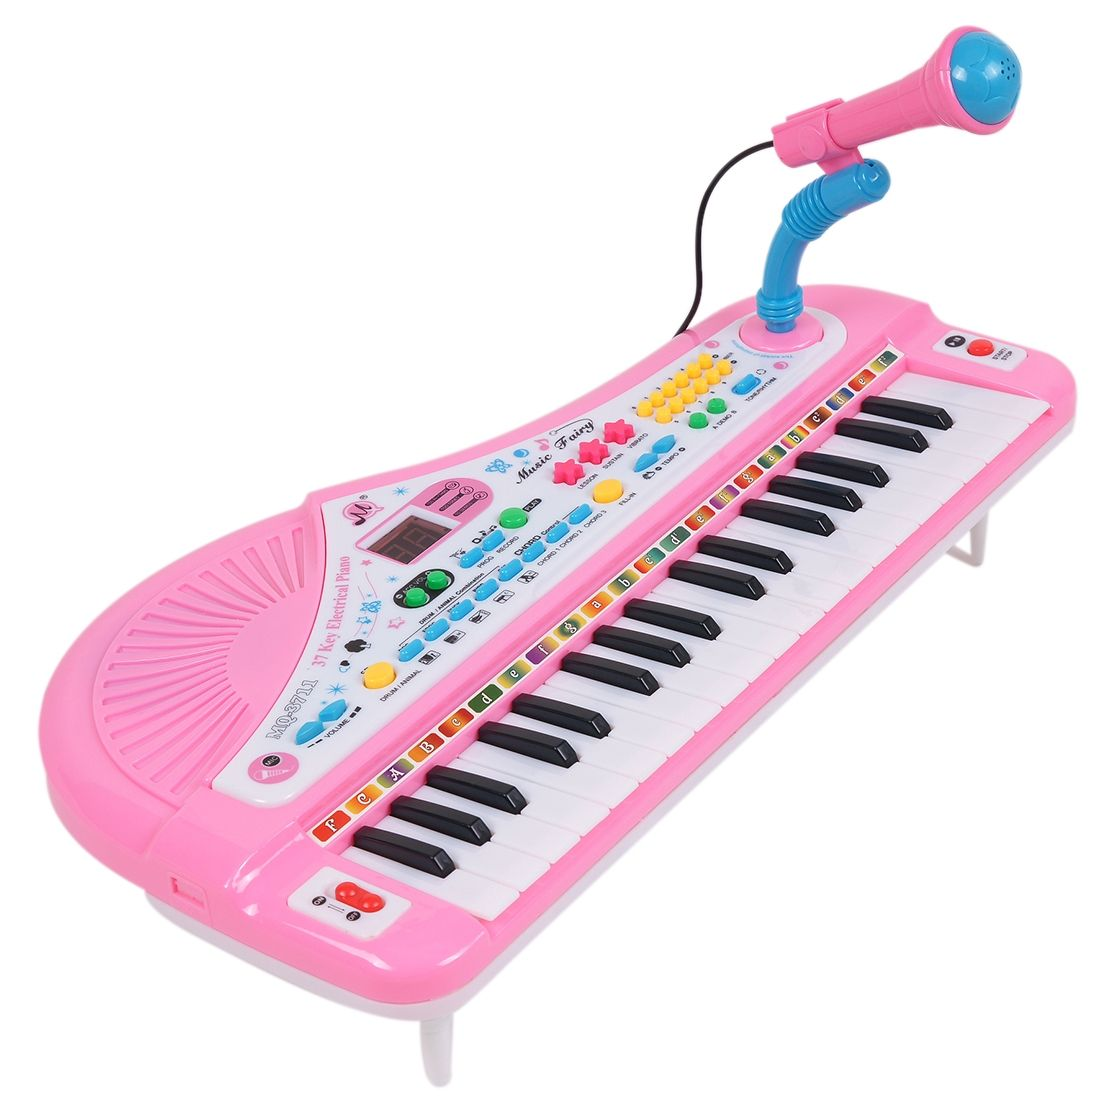 generic 37 key electronic keyboard digital piano musical toy with mic pink buy online. Black Bedroom Furniture Sets. Home Design Ideas